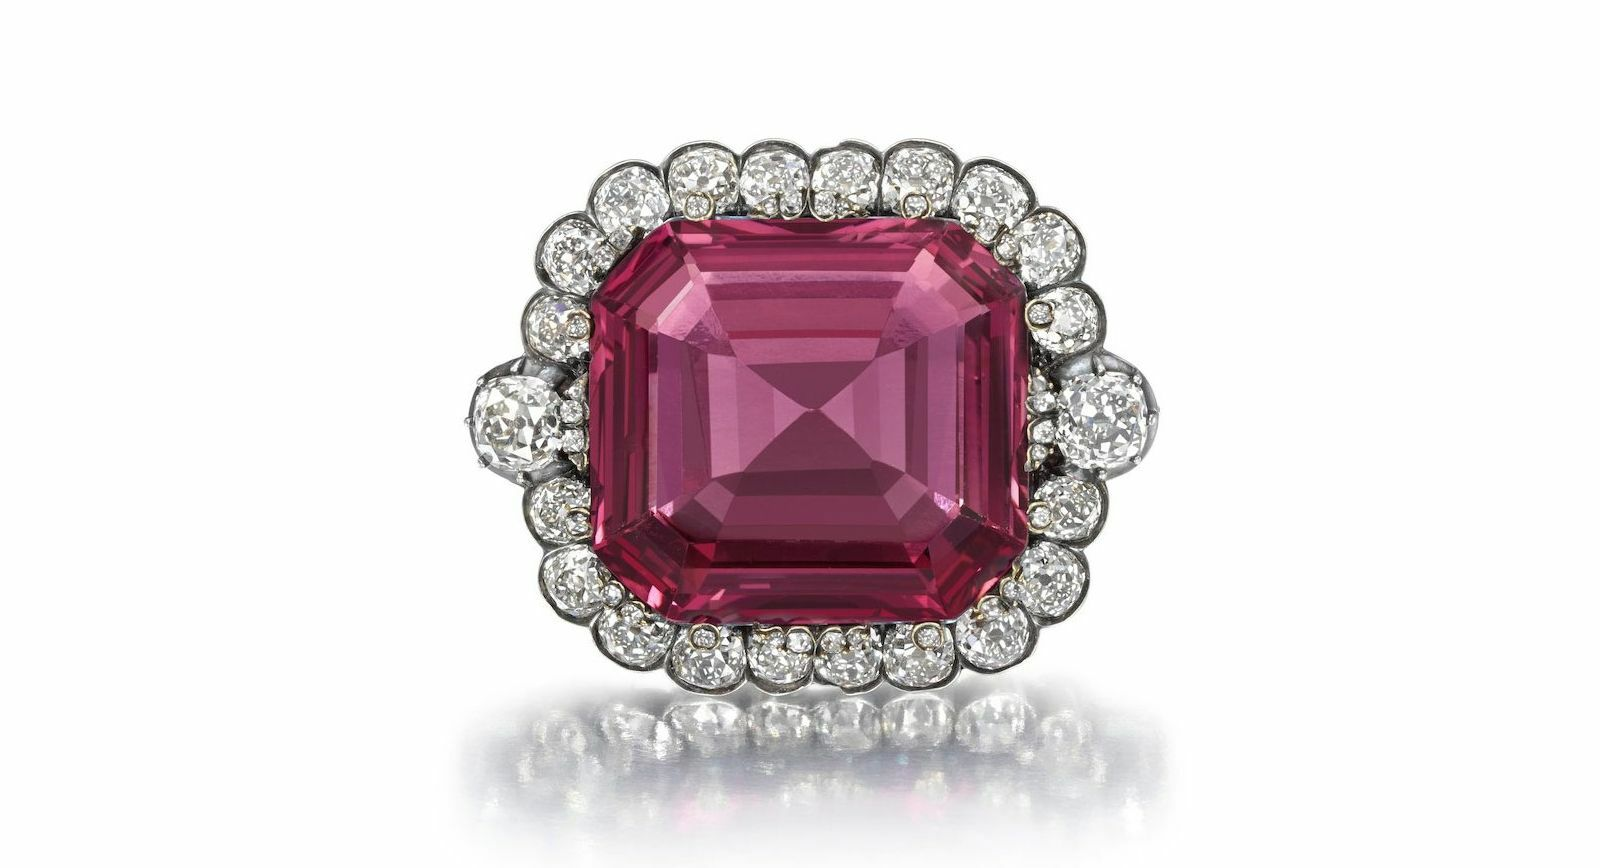 5 Remarkable Jewels Up For Auction At Bonhams On The 24th of September